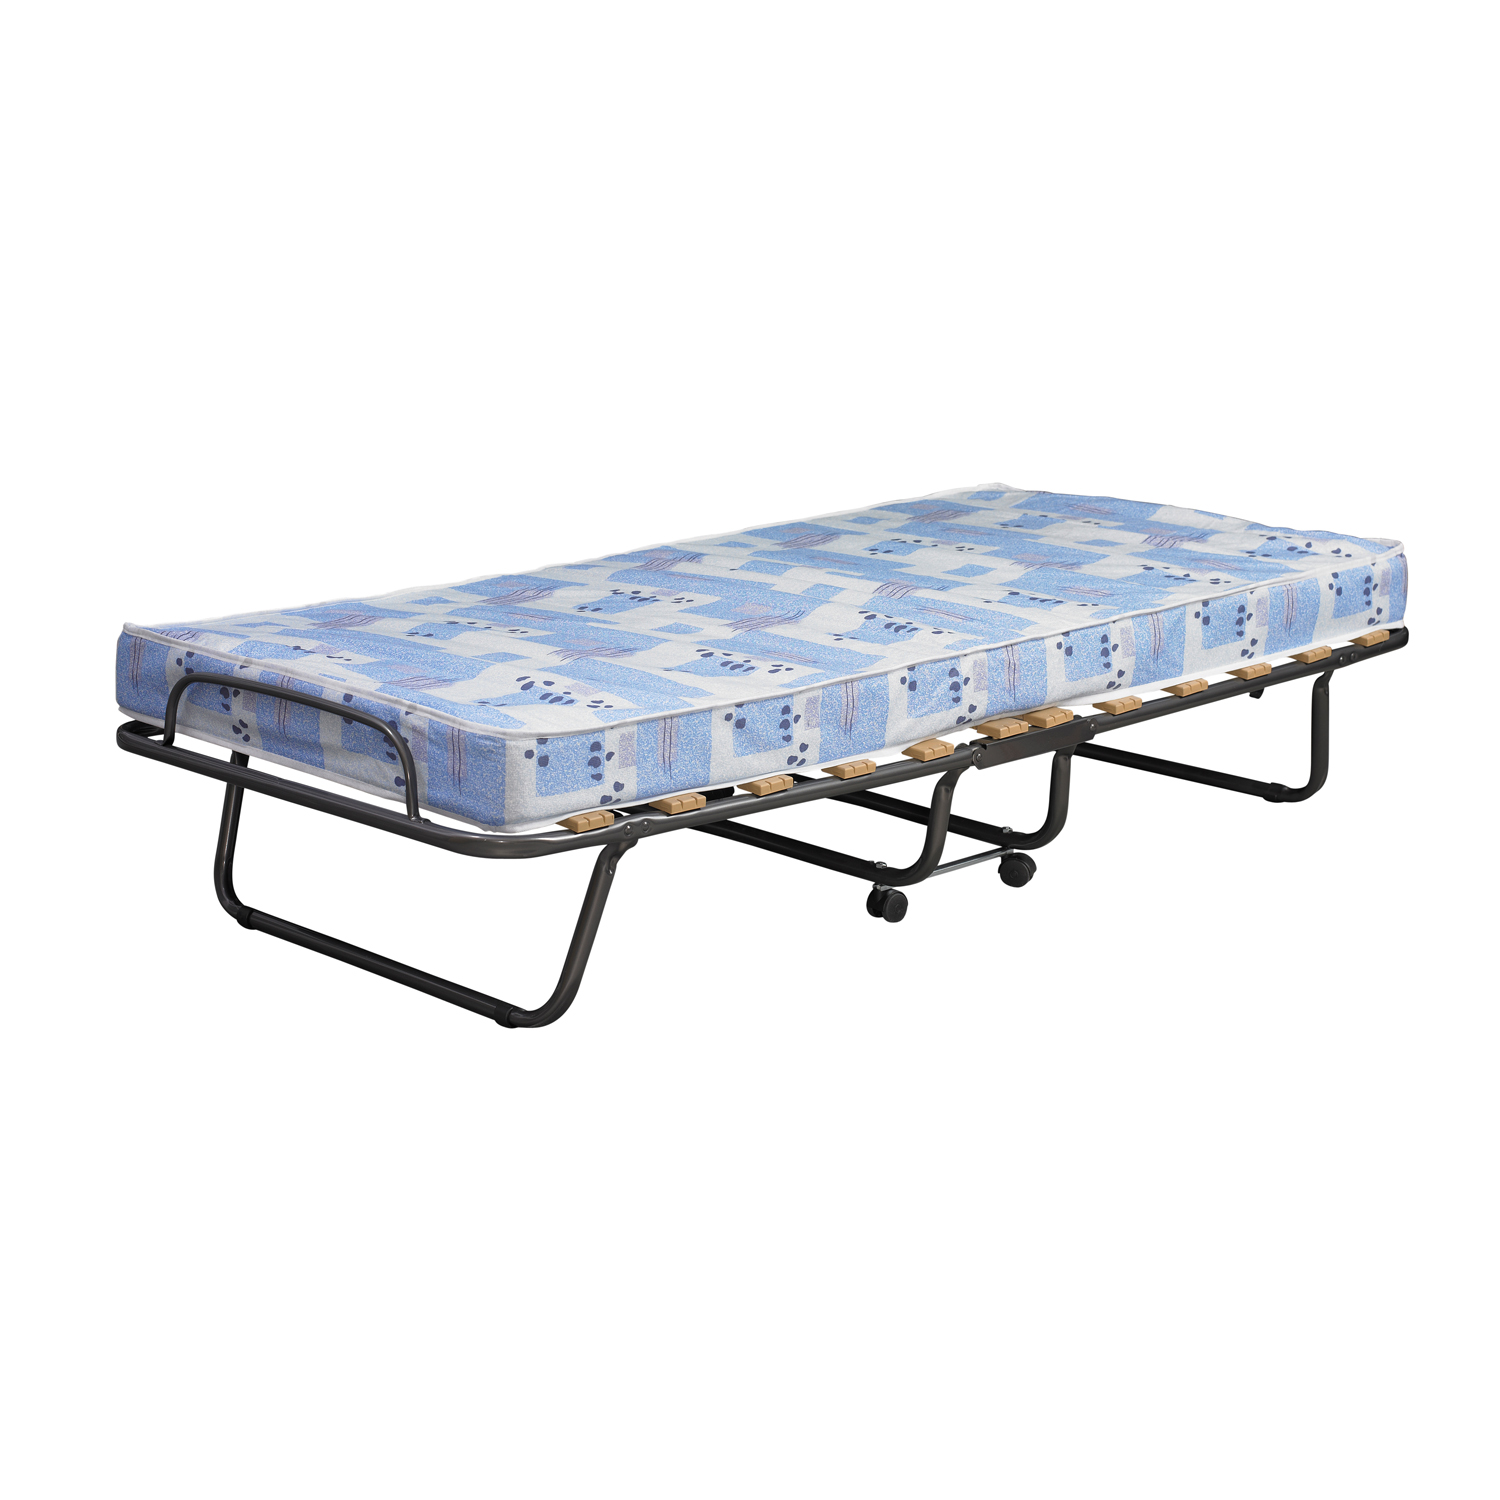 Z Beds For Adults Folding Beds Walmart